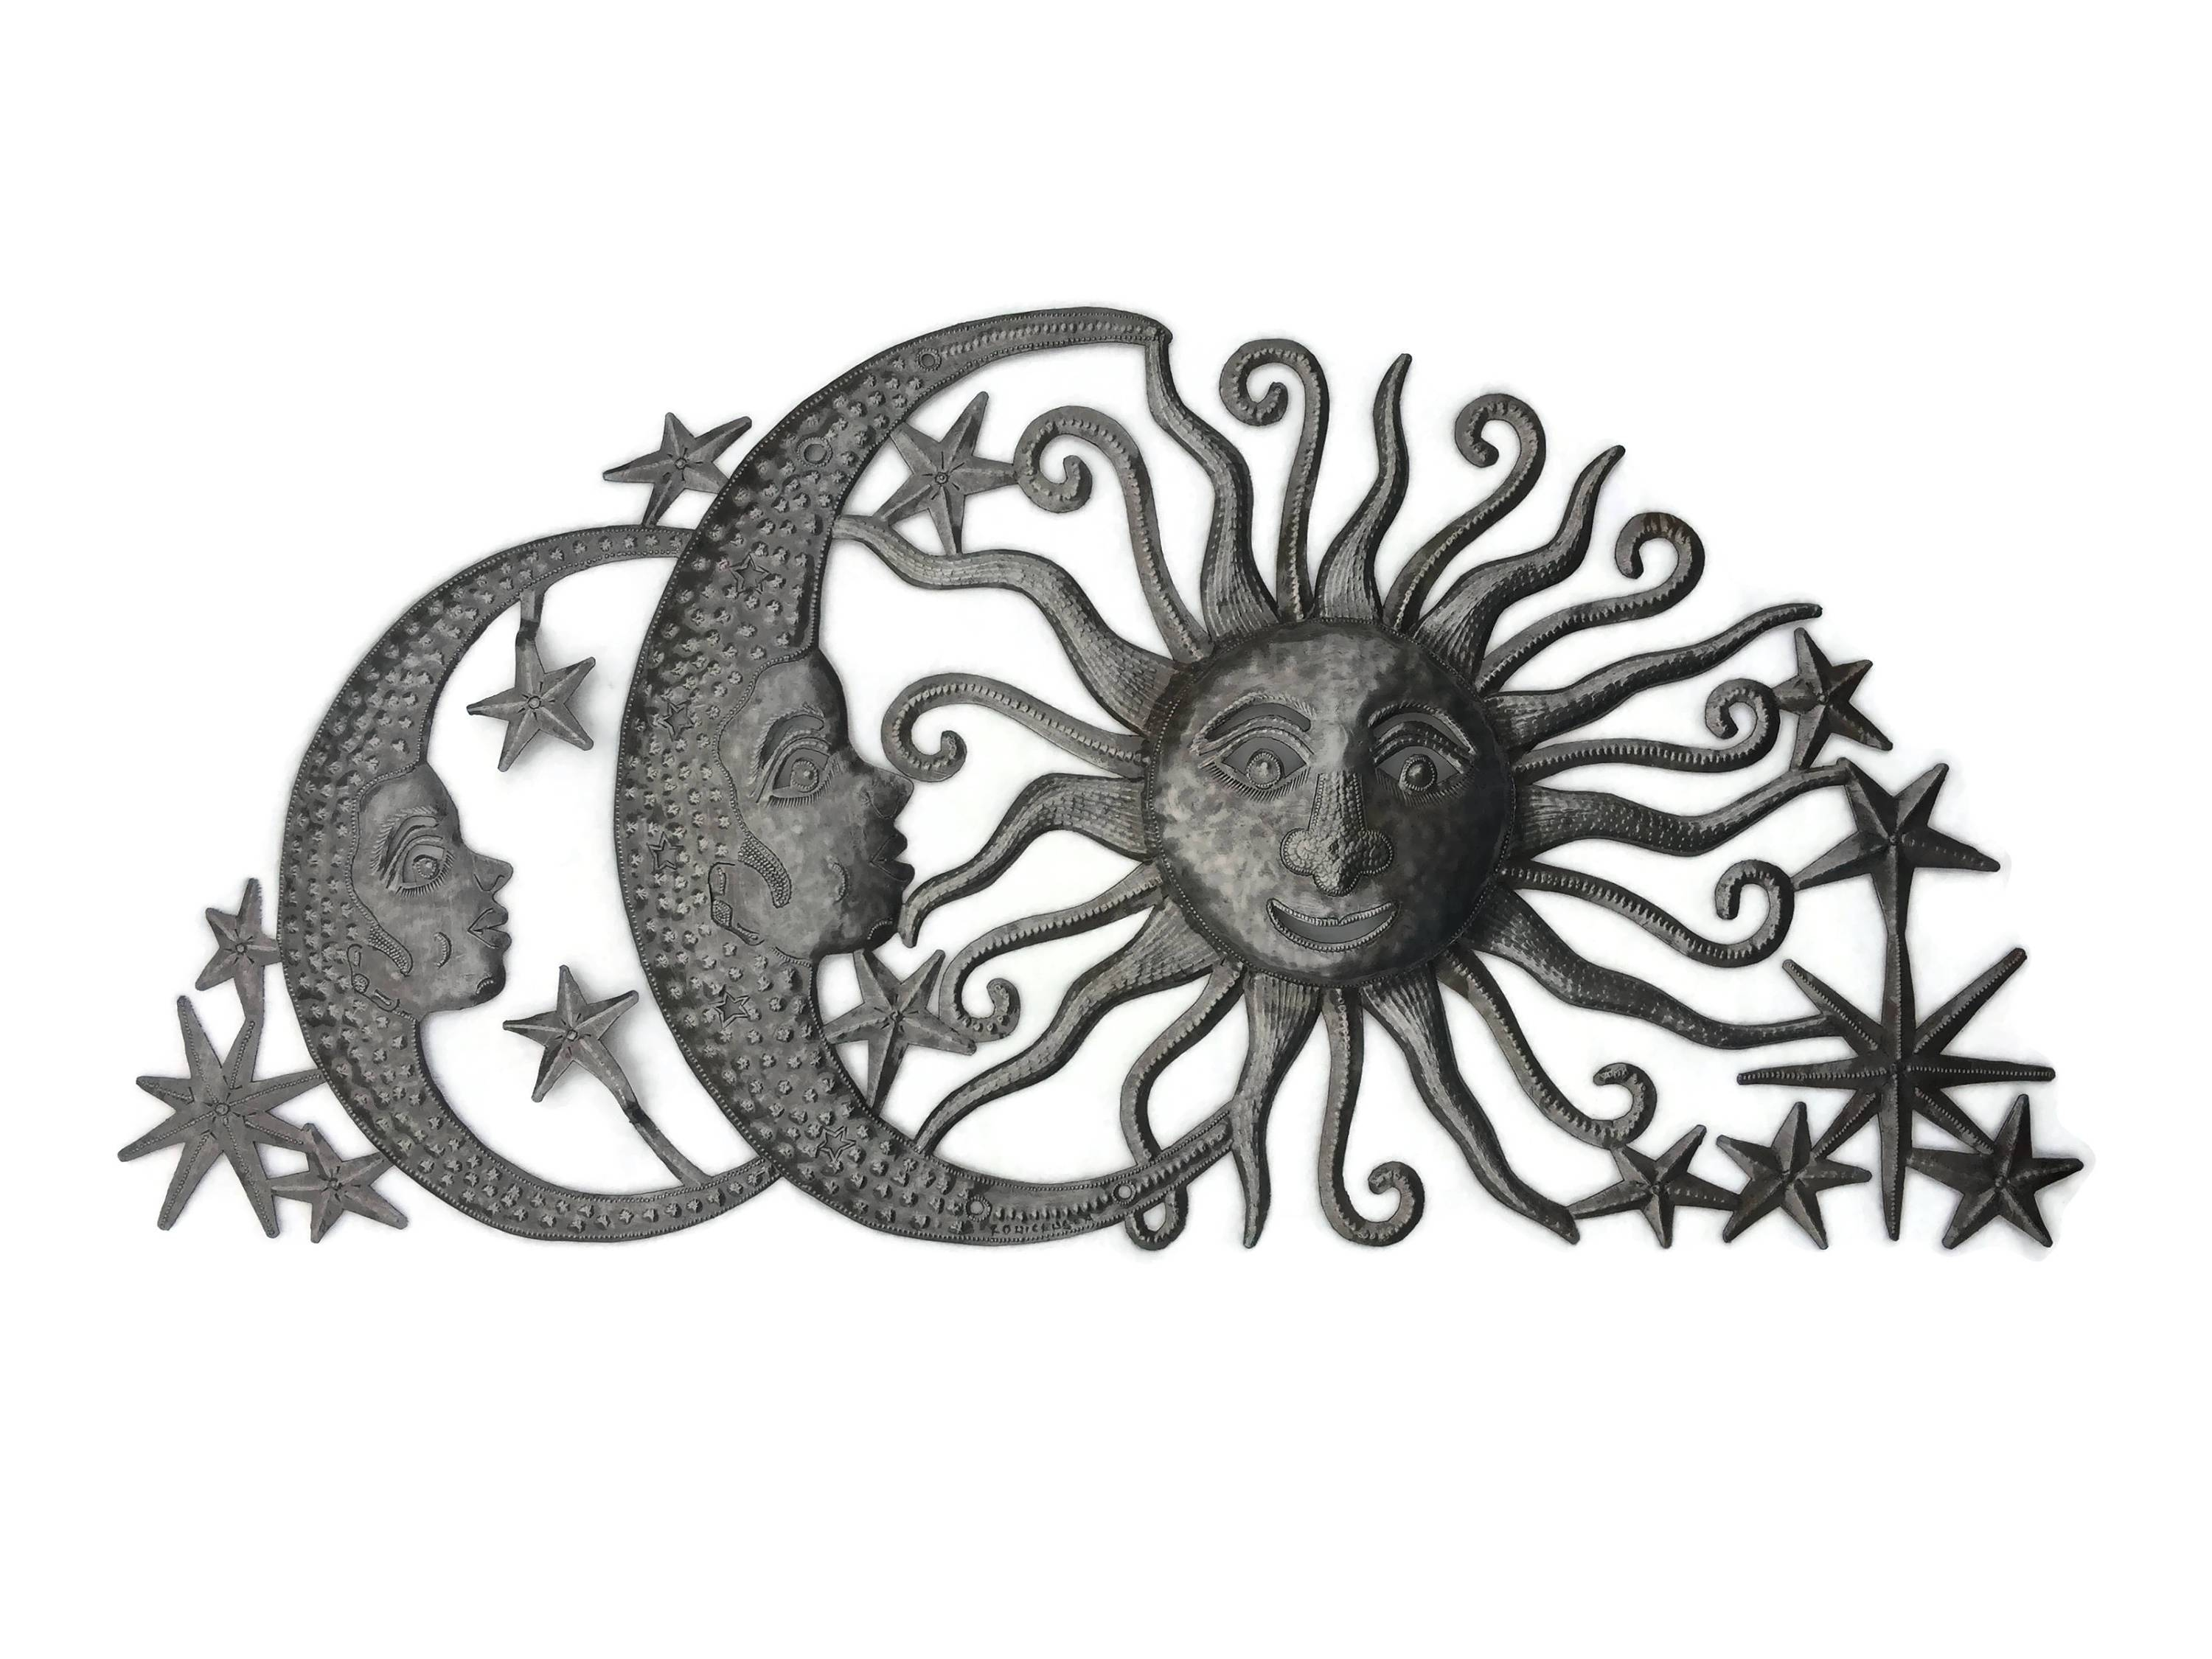 Sun Moons And Stars Celestial Arch, Haiti Metal Art, Fair Trade With Most Recent Haitian Metal Wall Art (View 15 of 20)